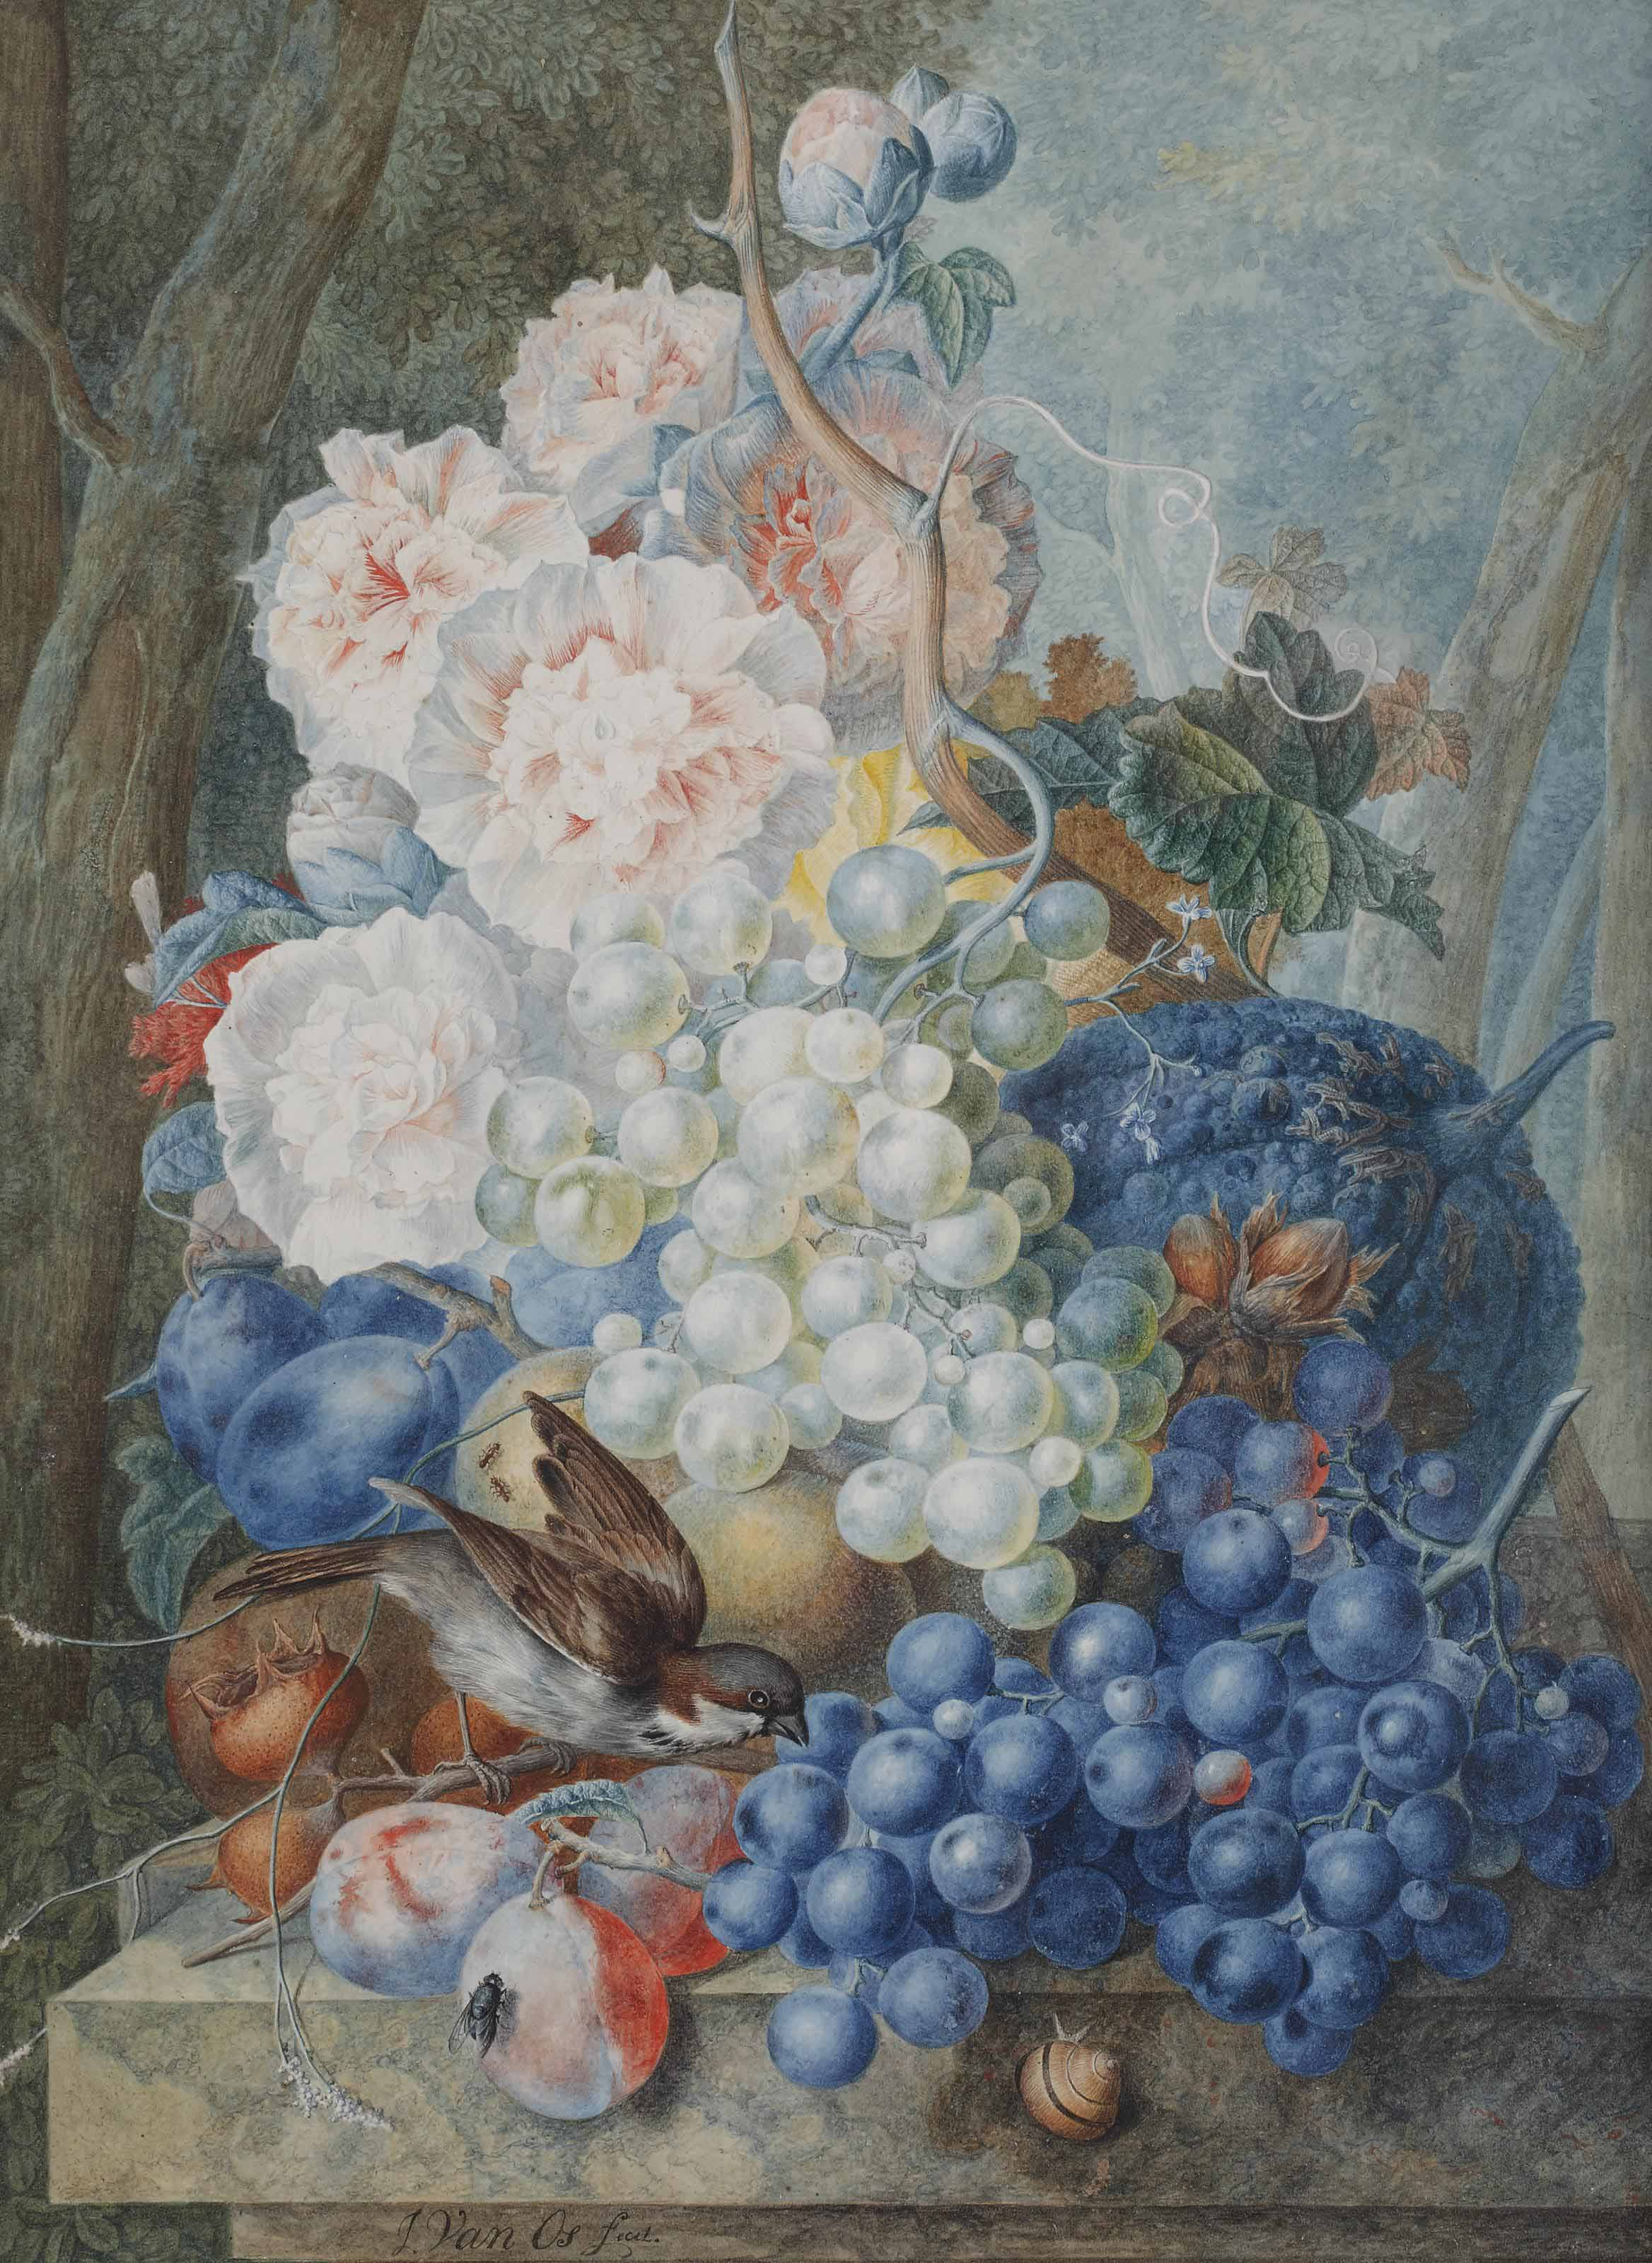 A bouquet of peonies with grapes, prunes, and a sparrow in a garden landscape